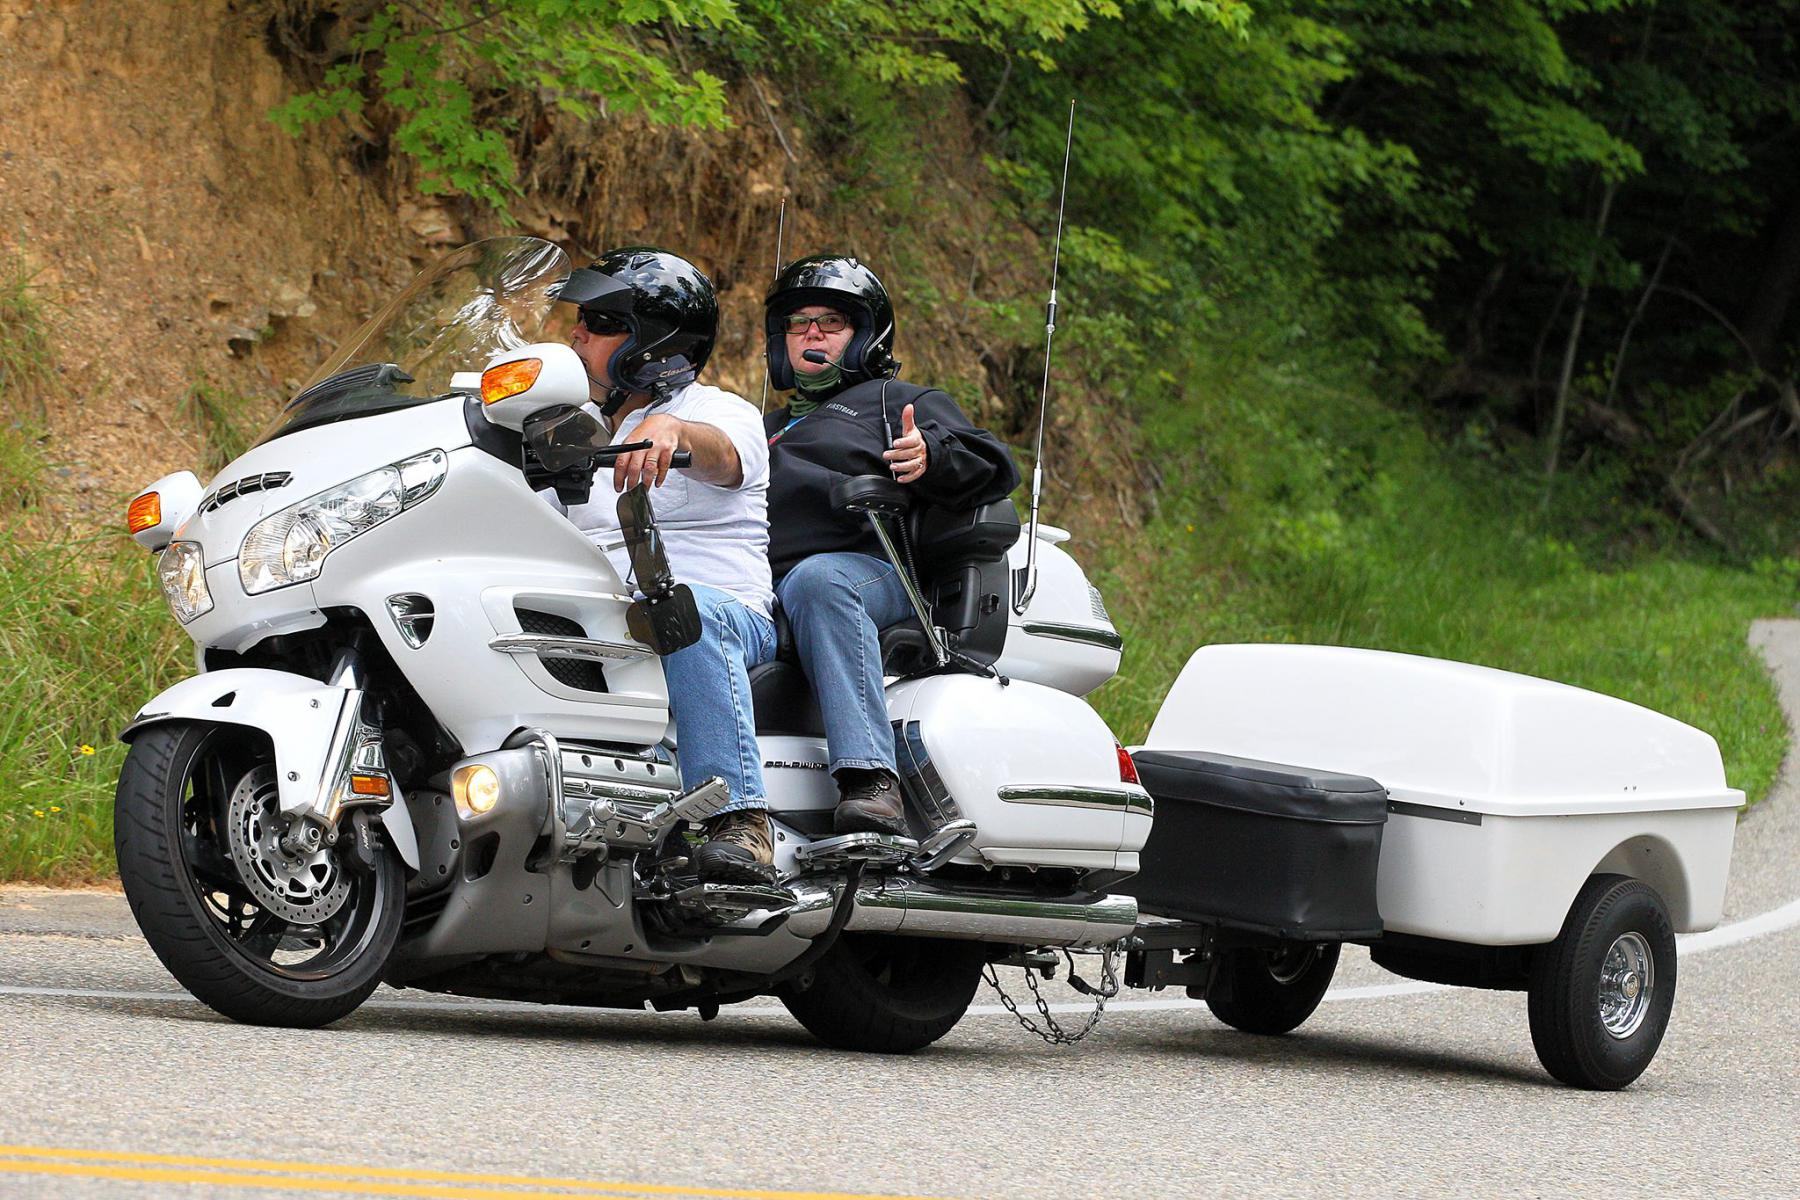 K1600 VS. Honda Goldwing Reliability - Page 5 - BMW K1600 ...